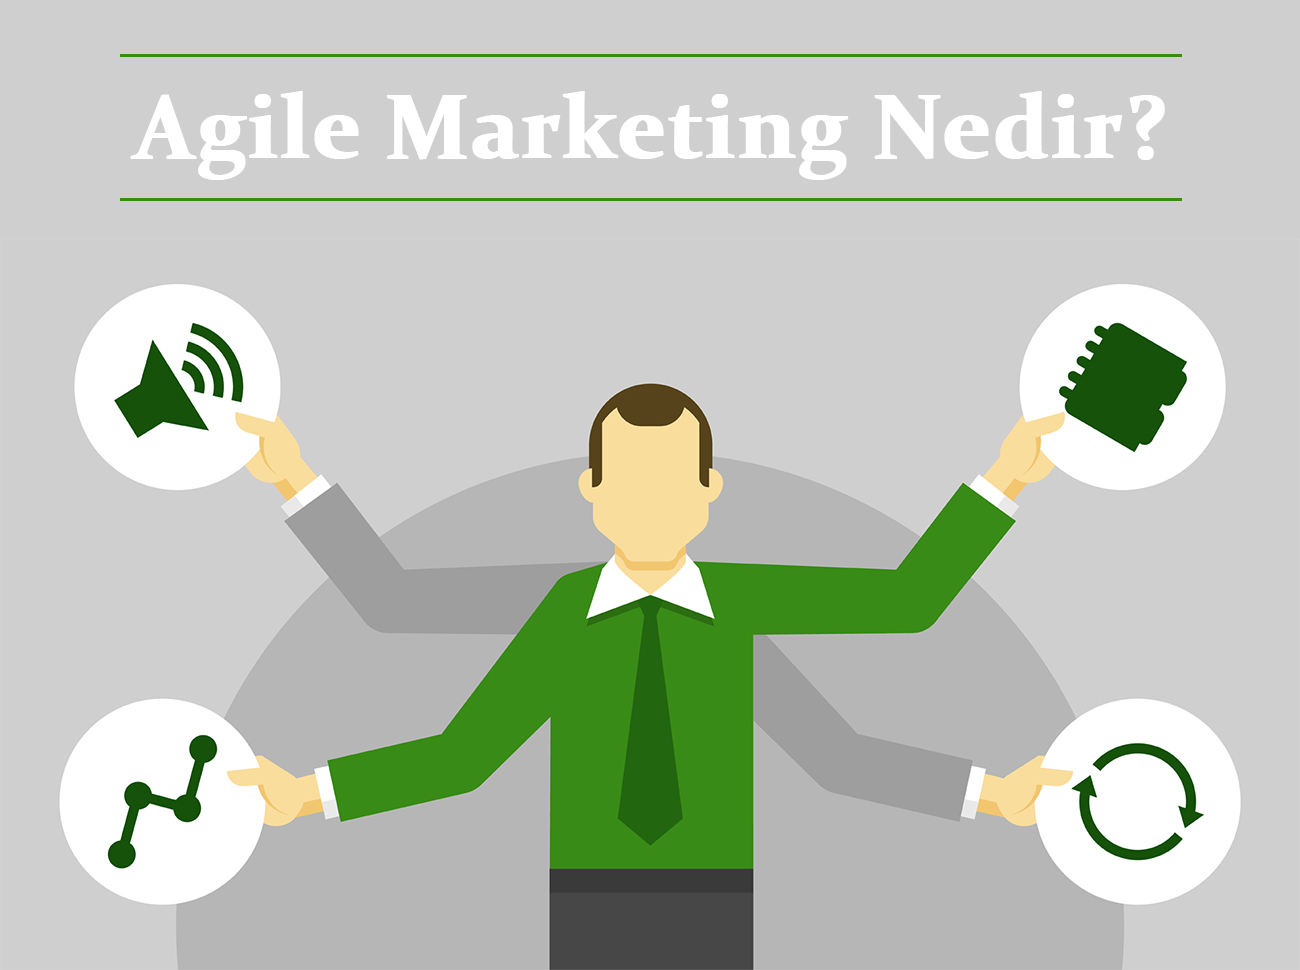 Agile Marketing Nedir?